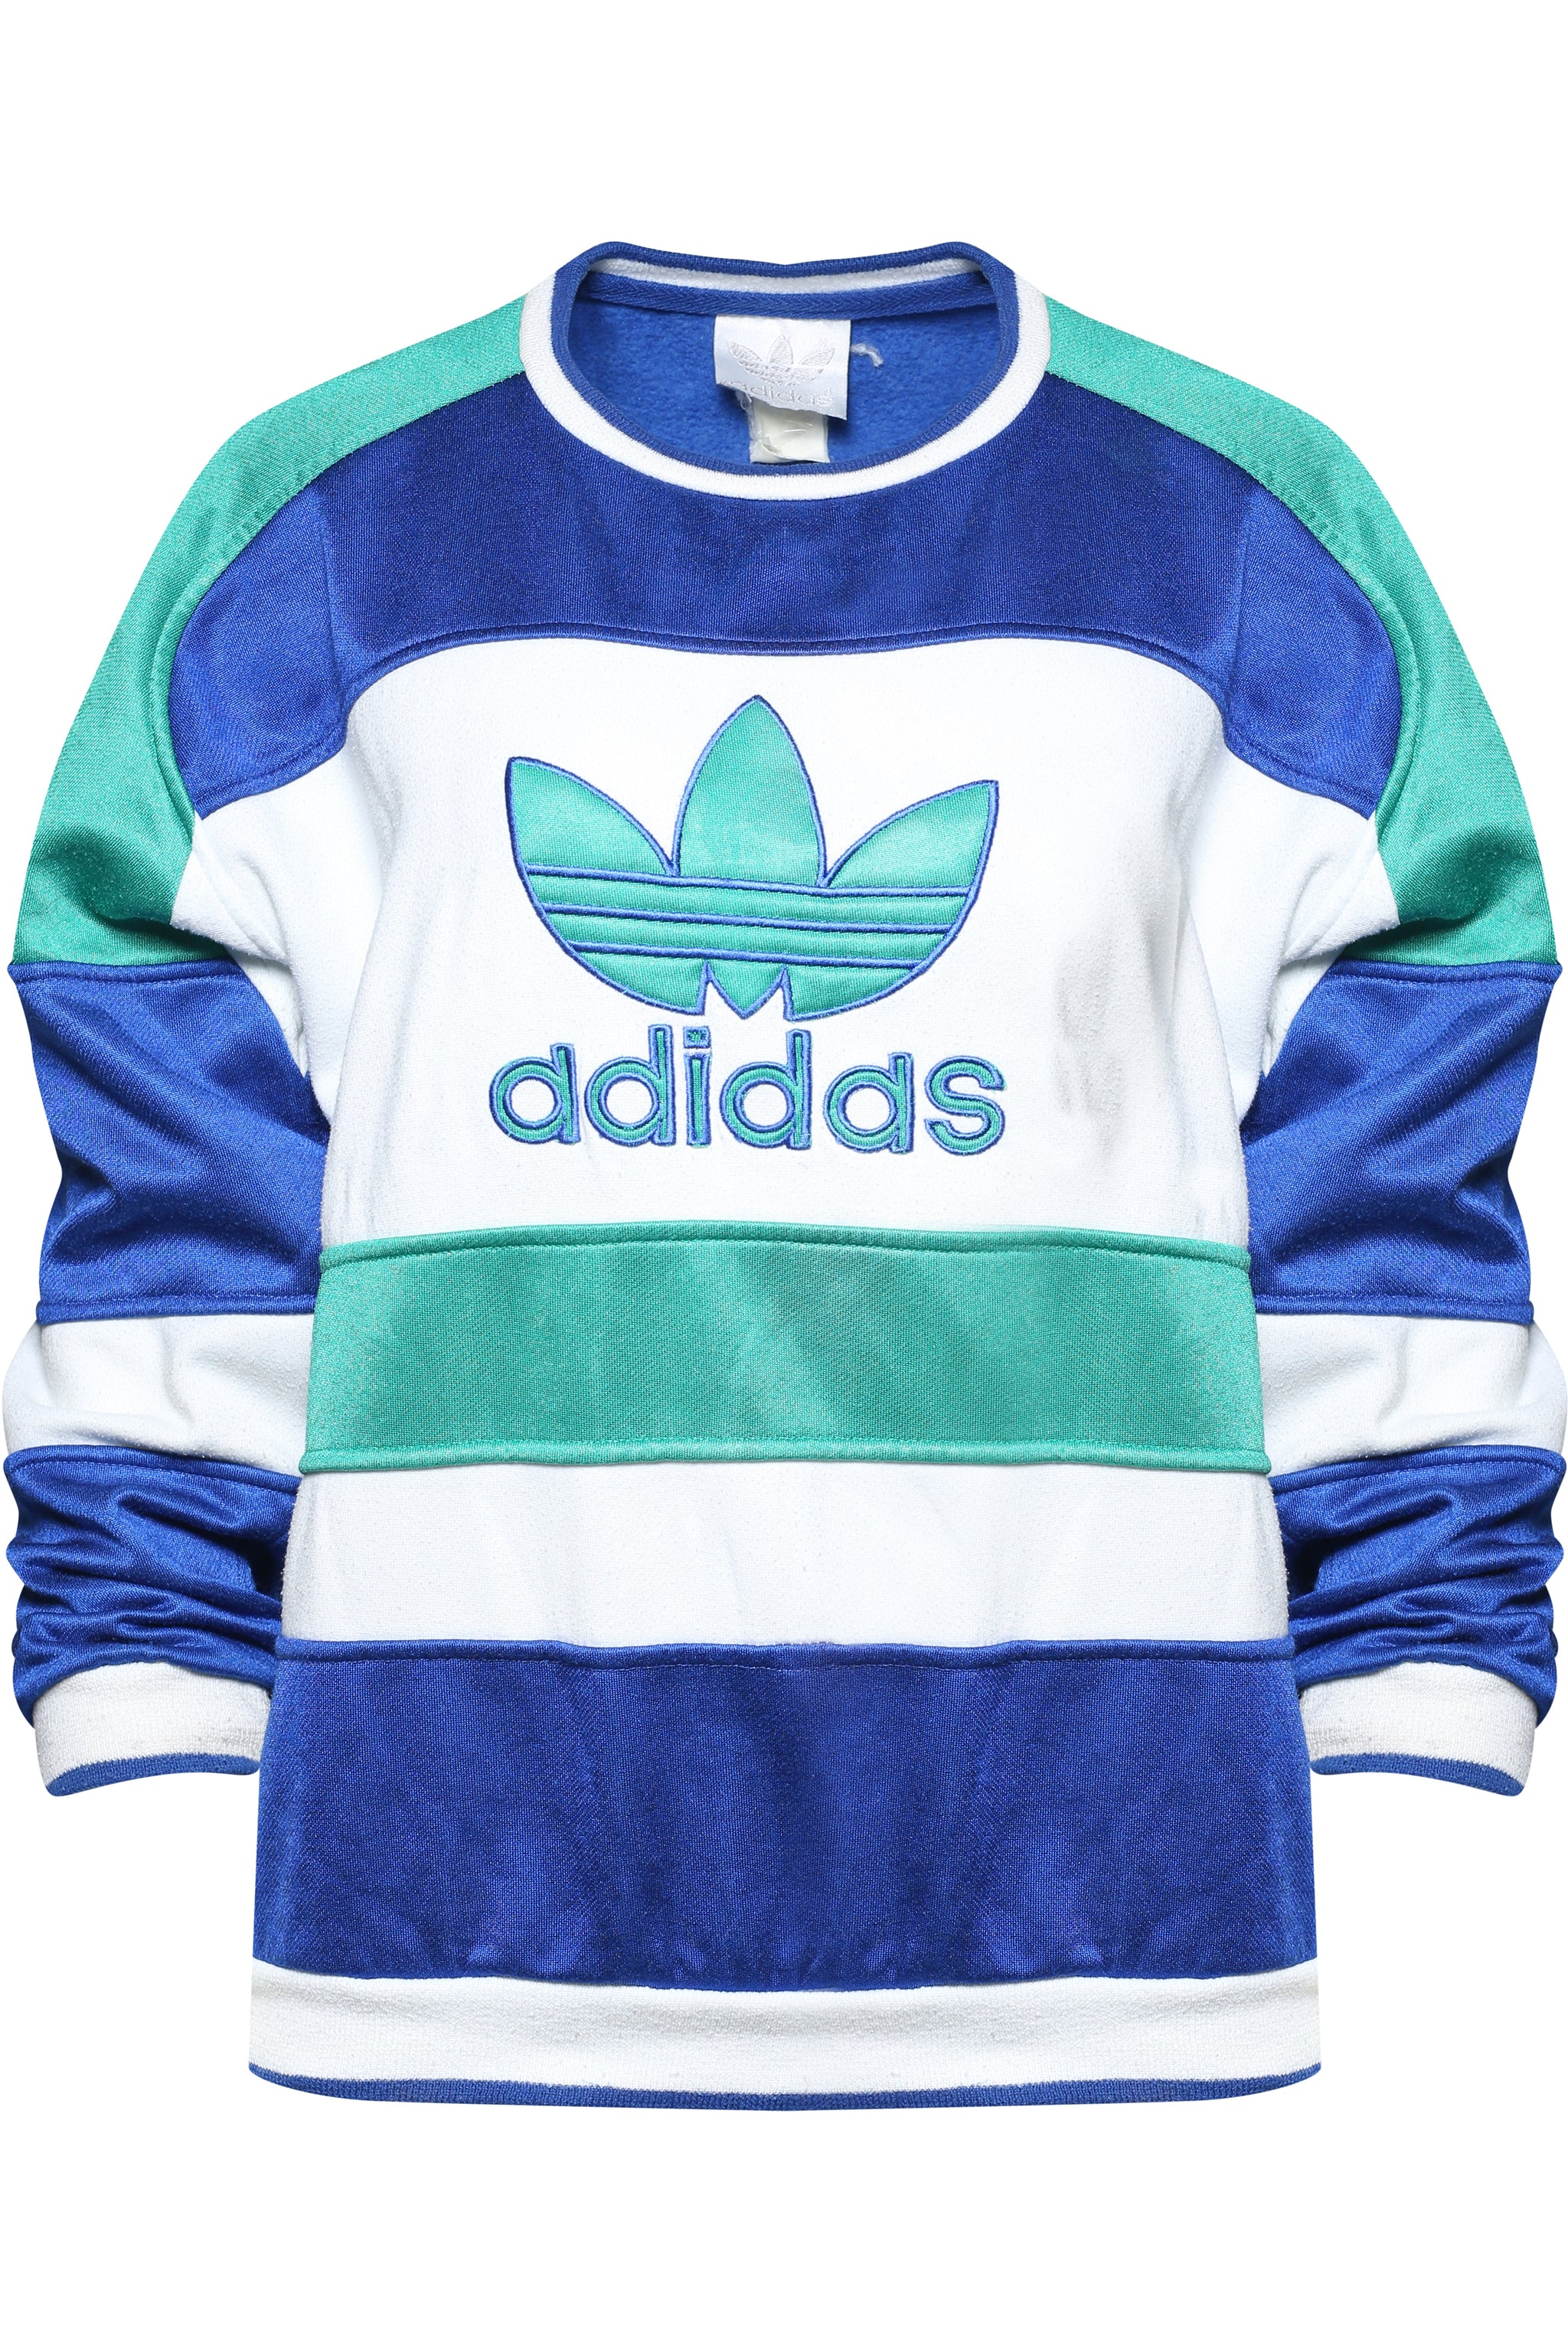 Vintage Adidas 90s Sweatshirt in Colour Block w Logo Front